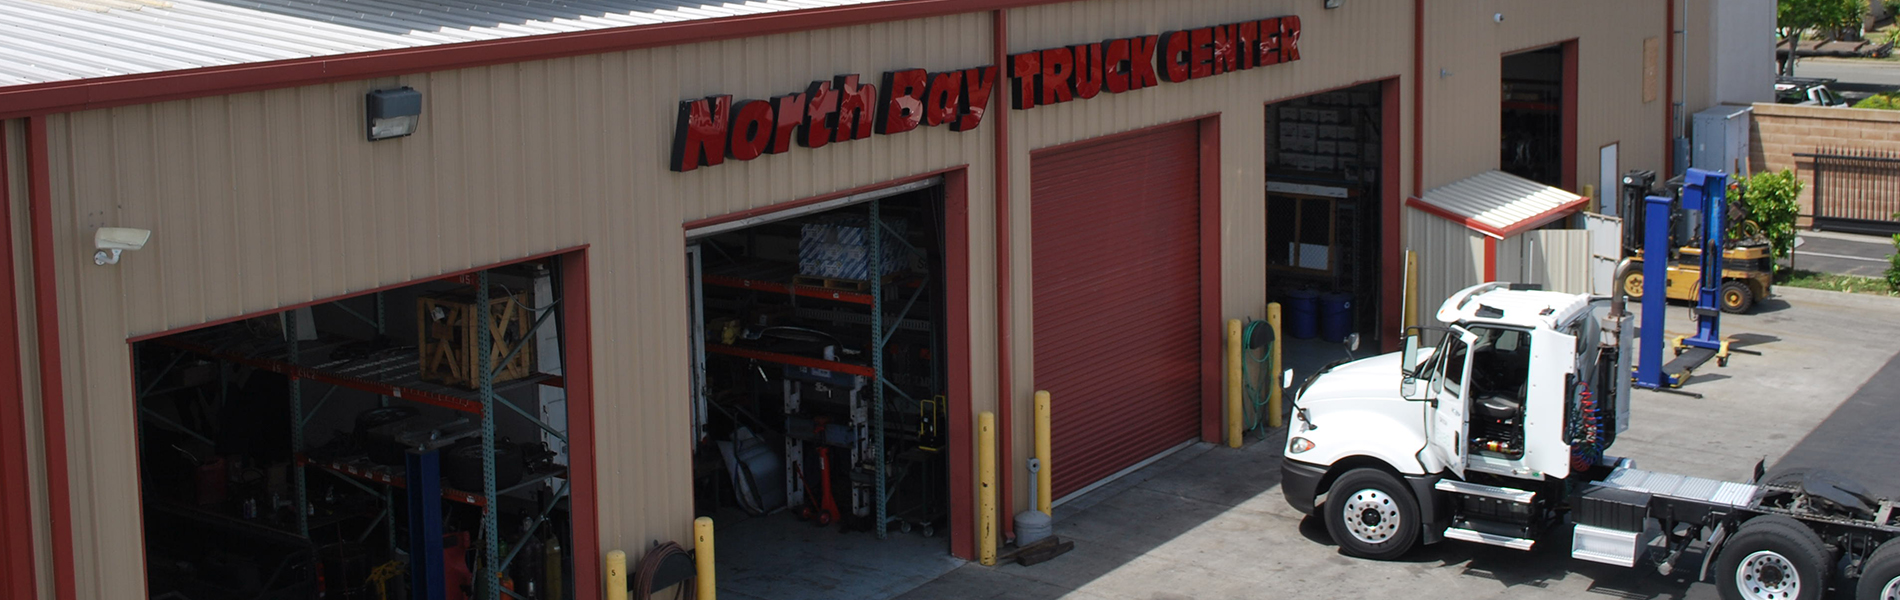 North Bay Truck Center : Solano County's Largest Parts & Service Truck Center